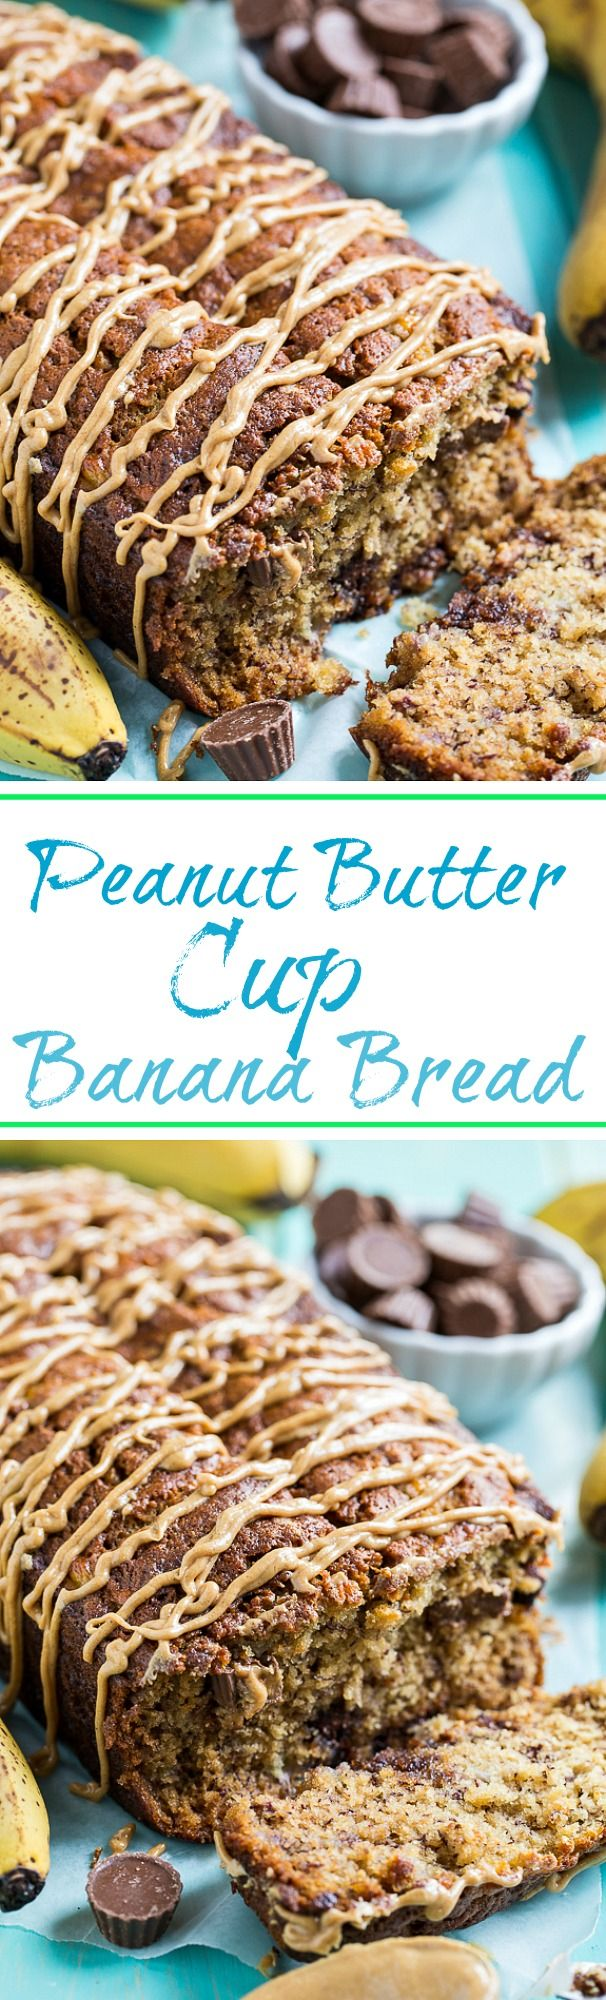 Peanut Butter Cup Banana Bread is full of chocolate and peanut butter. A full 1 1/2 cups of mini Reese's Peanut Butter Cups are added to the batter and for even more yumminess a peanut butter glaze is drizzled on top.